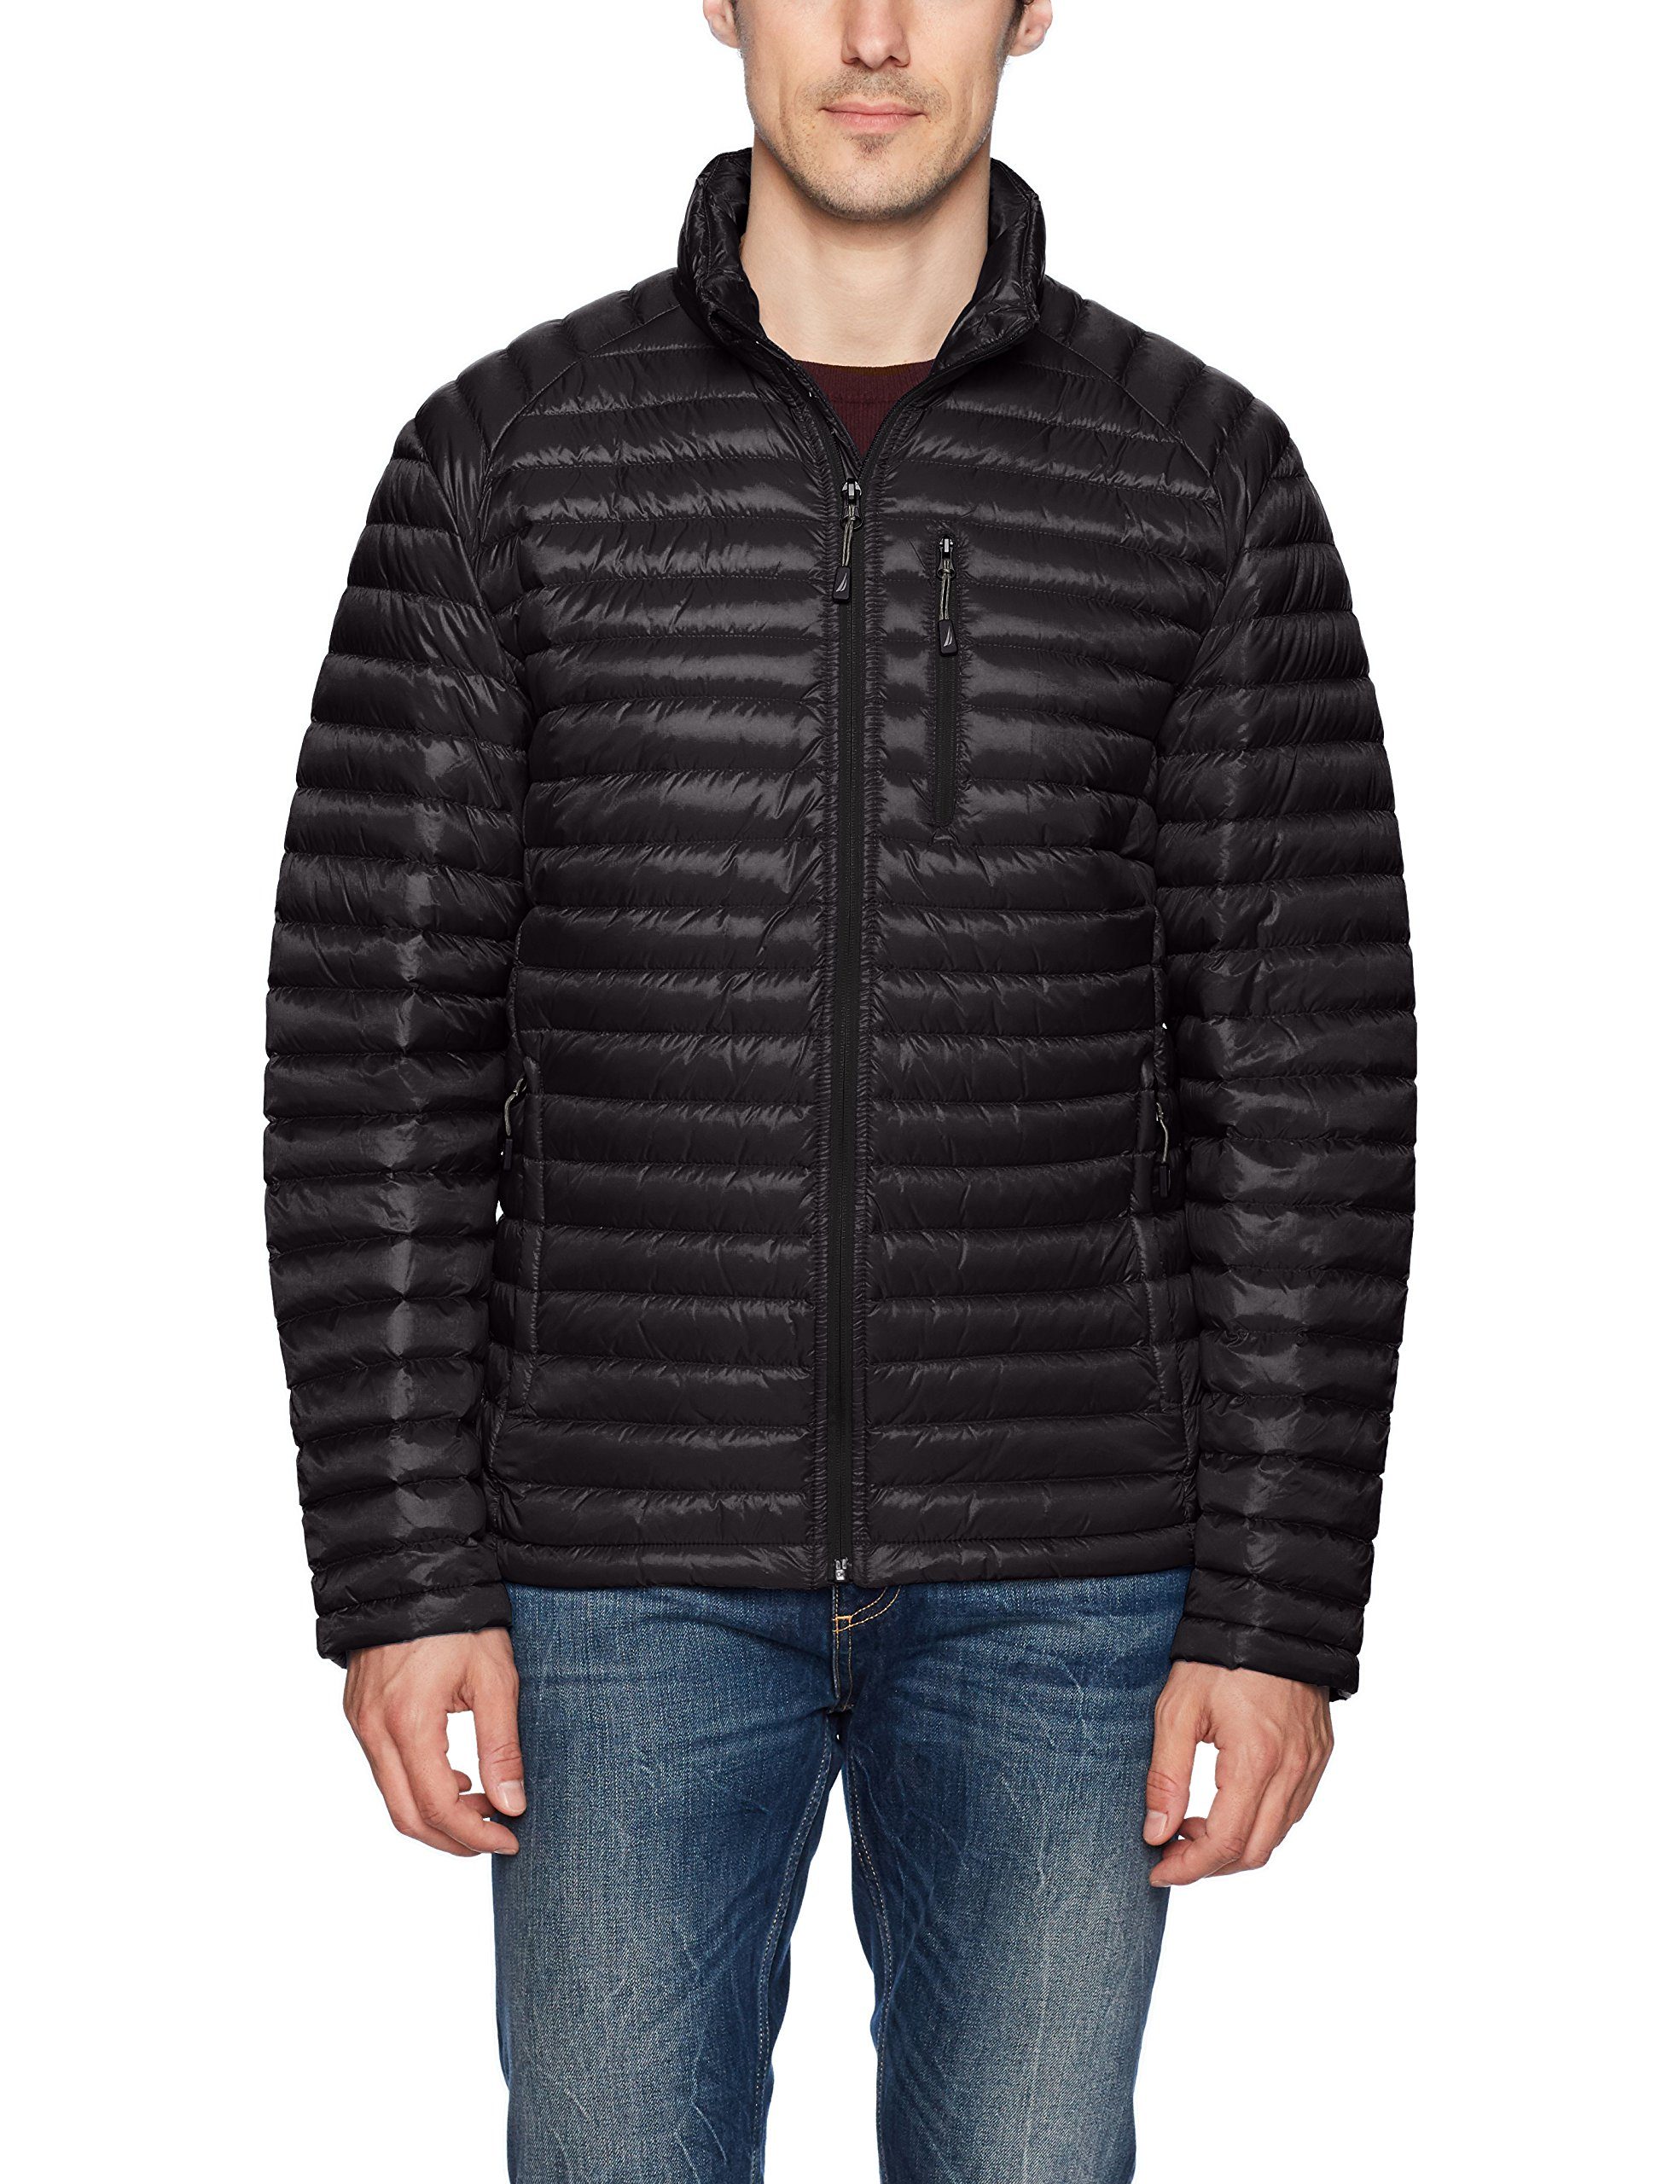 Nautica Men's Down Packable Puffer Jacket, Black, M